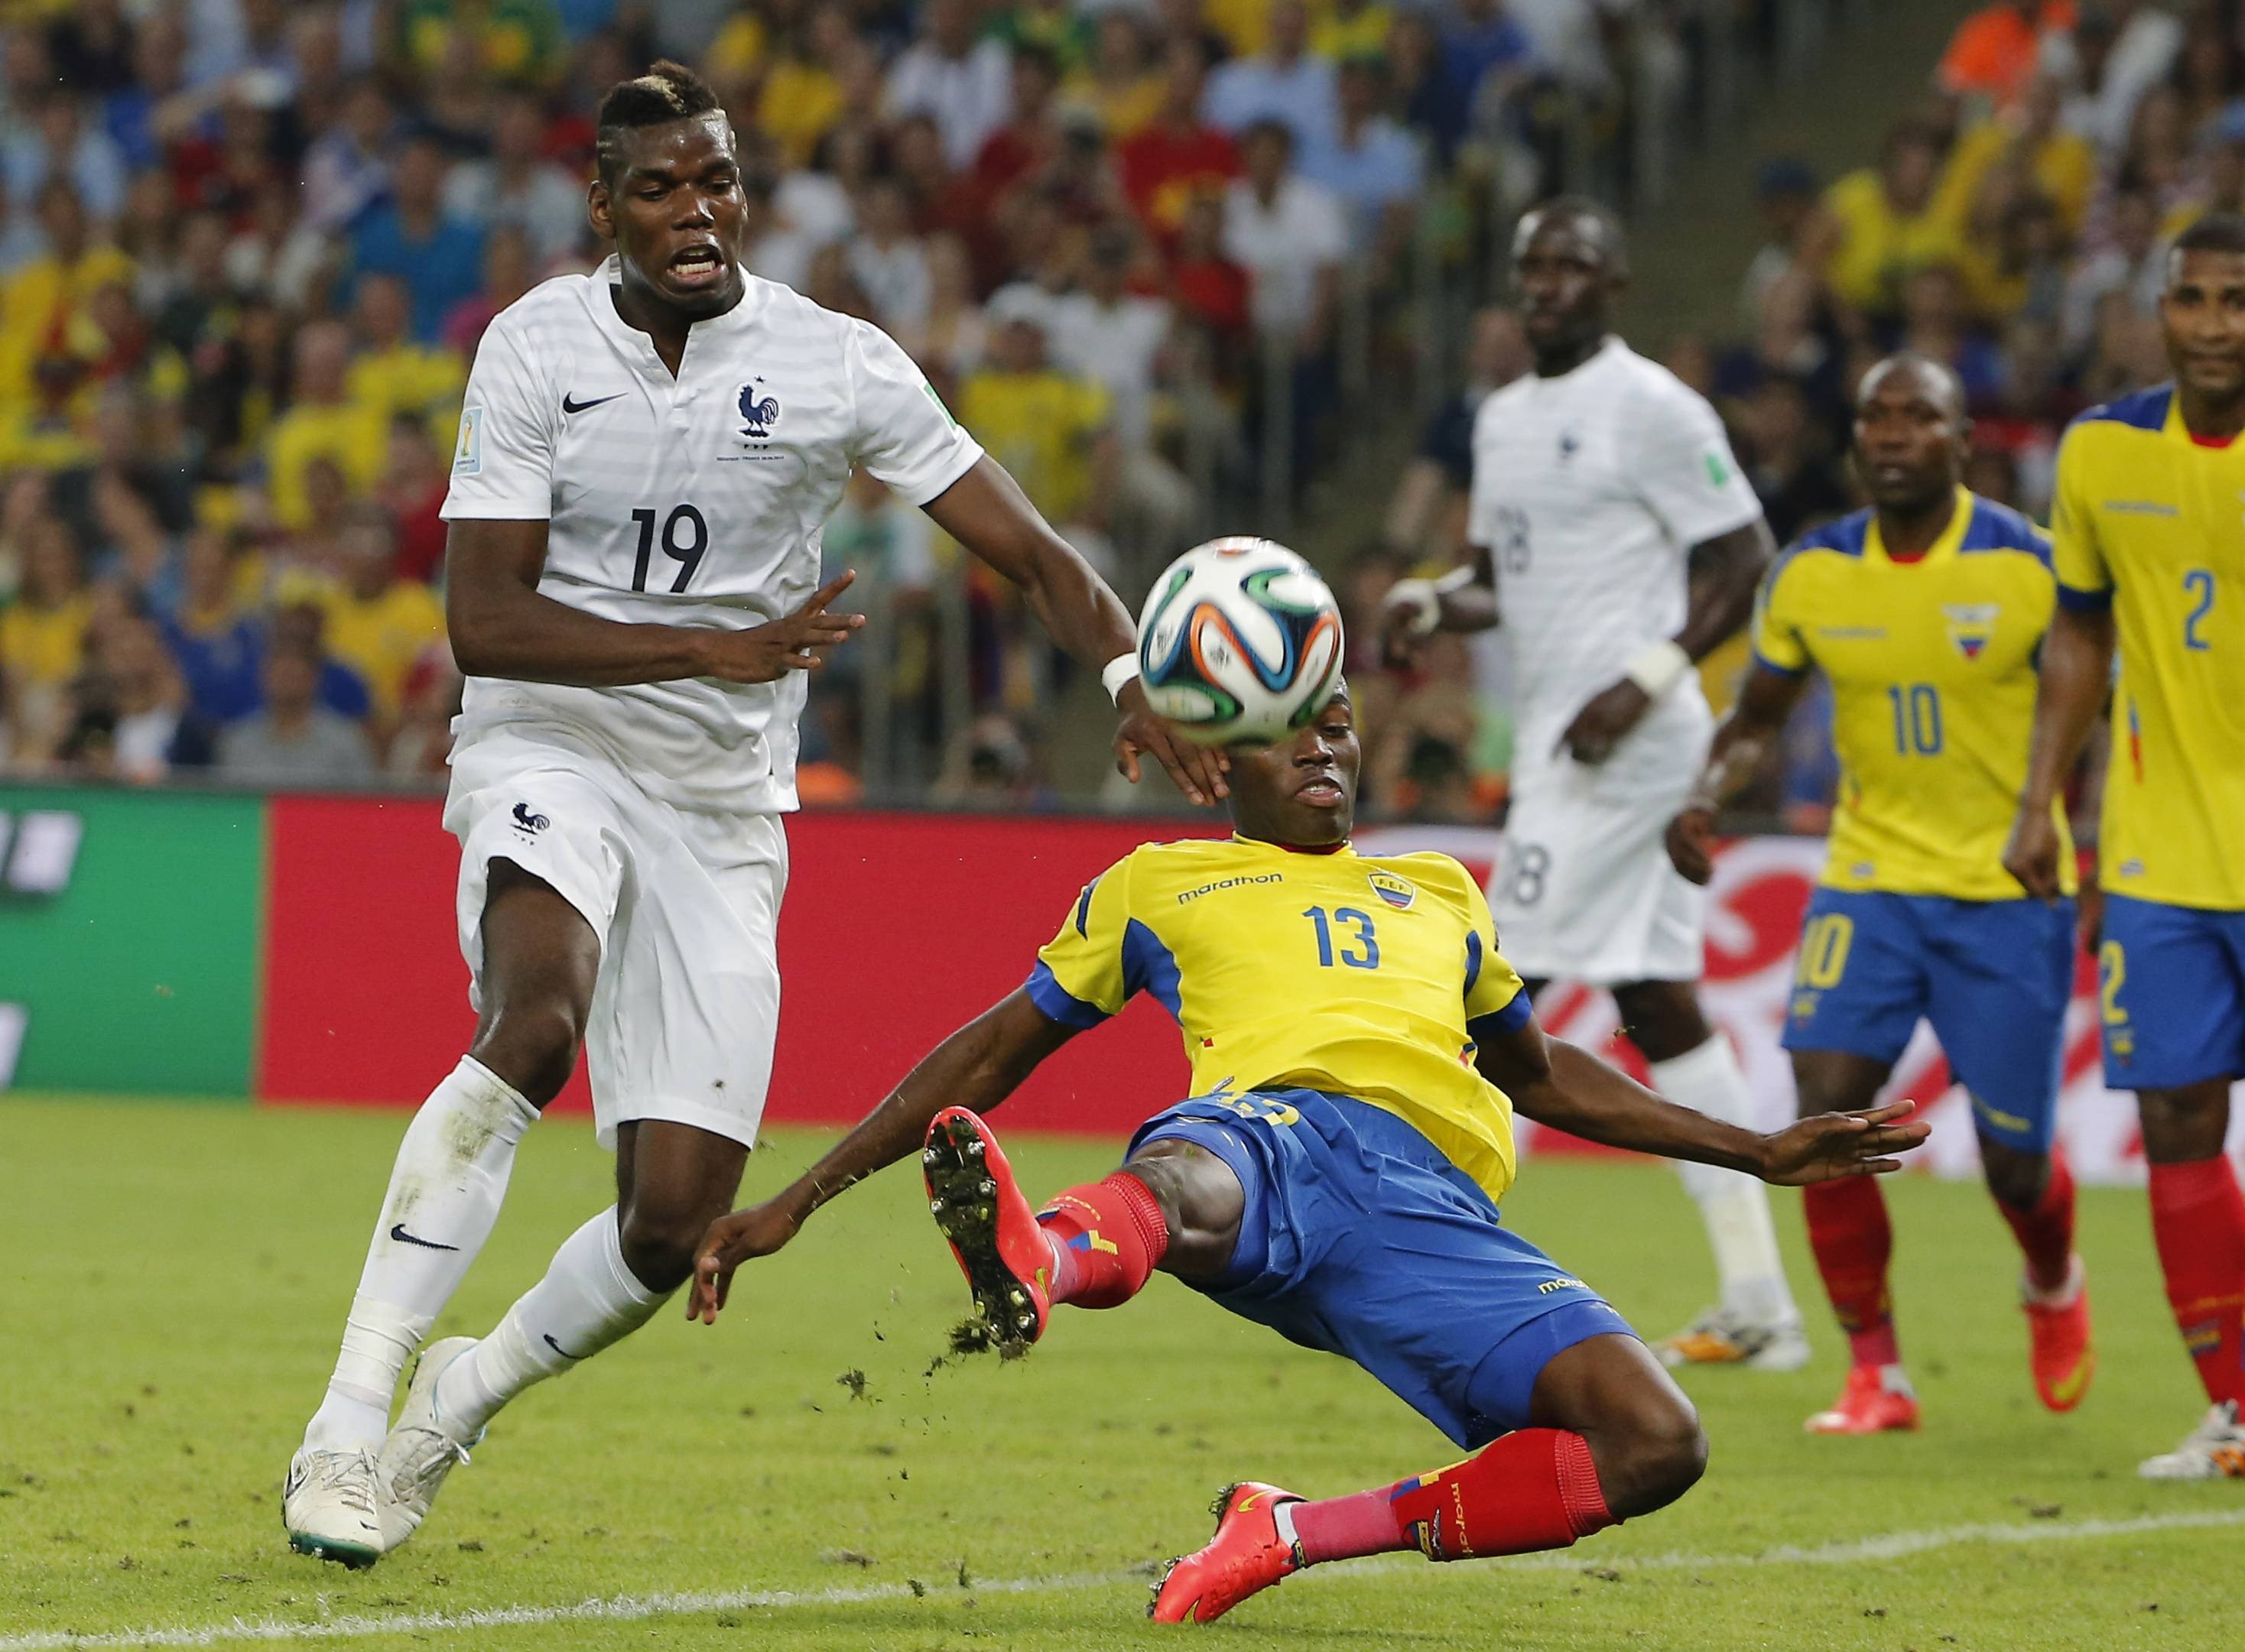 Ecuador's Enner Valencia, bottom, and France's Paul Pogba challenge for the ball during the group E World Cup soccer match between Ecuador and France at the Maracana stadium in Rio de Janeiro, Brazil, Wednesday, June 25, 2014. (AP Photo/David Vincent)